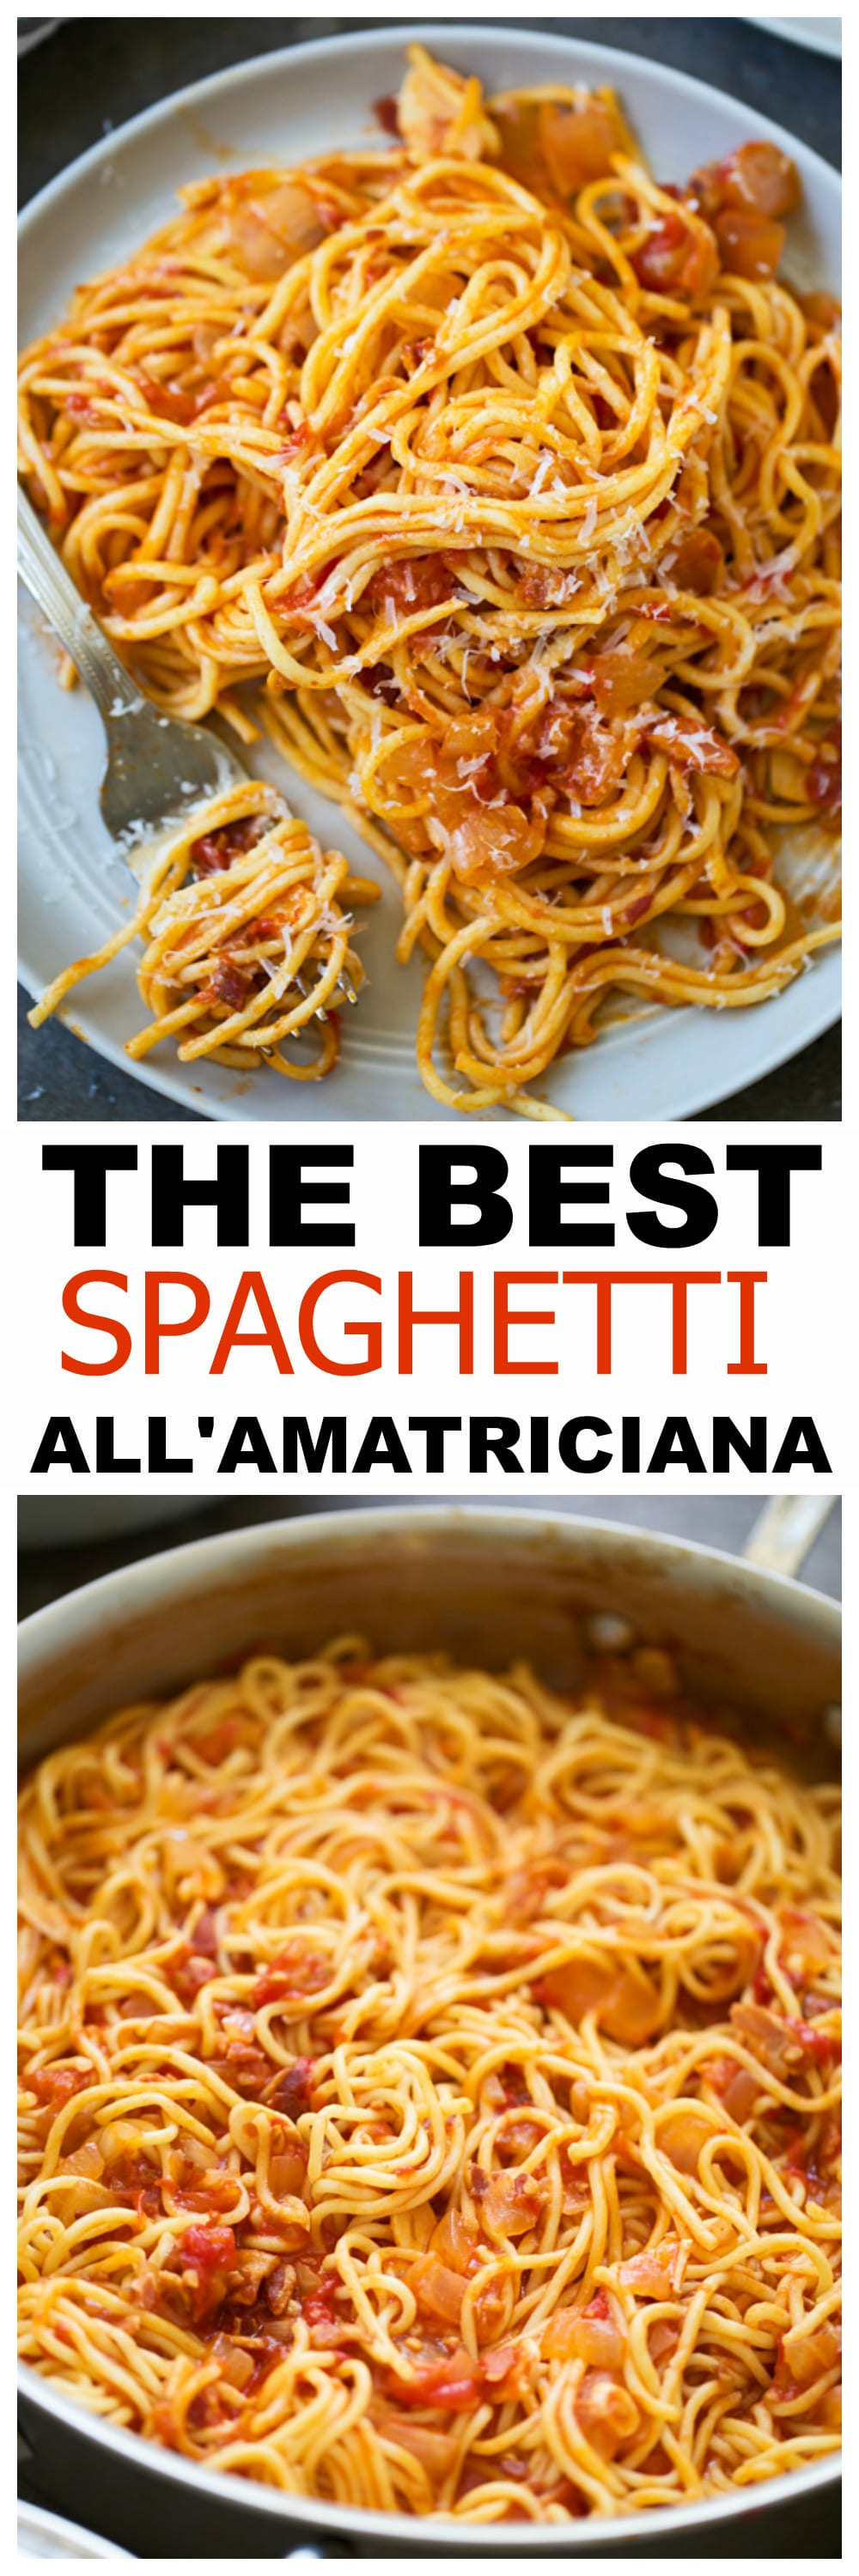 The Best Spaghetti All'Amatriciana made with fresh tomatoes and homemade spaghetti.